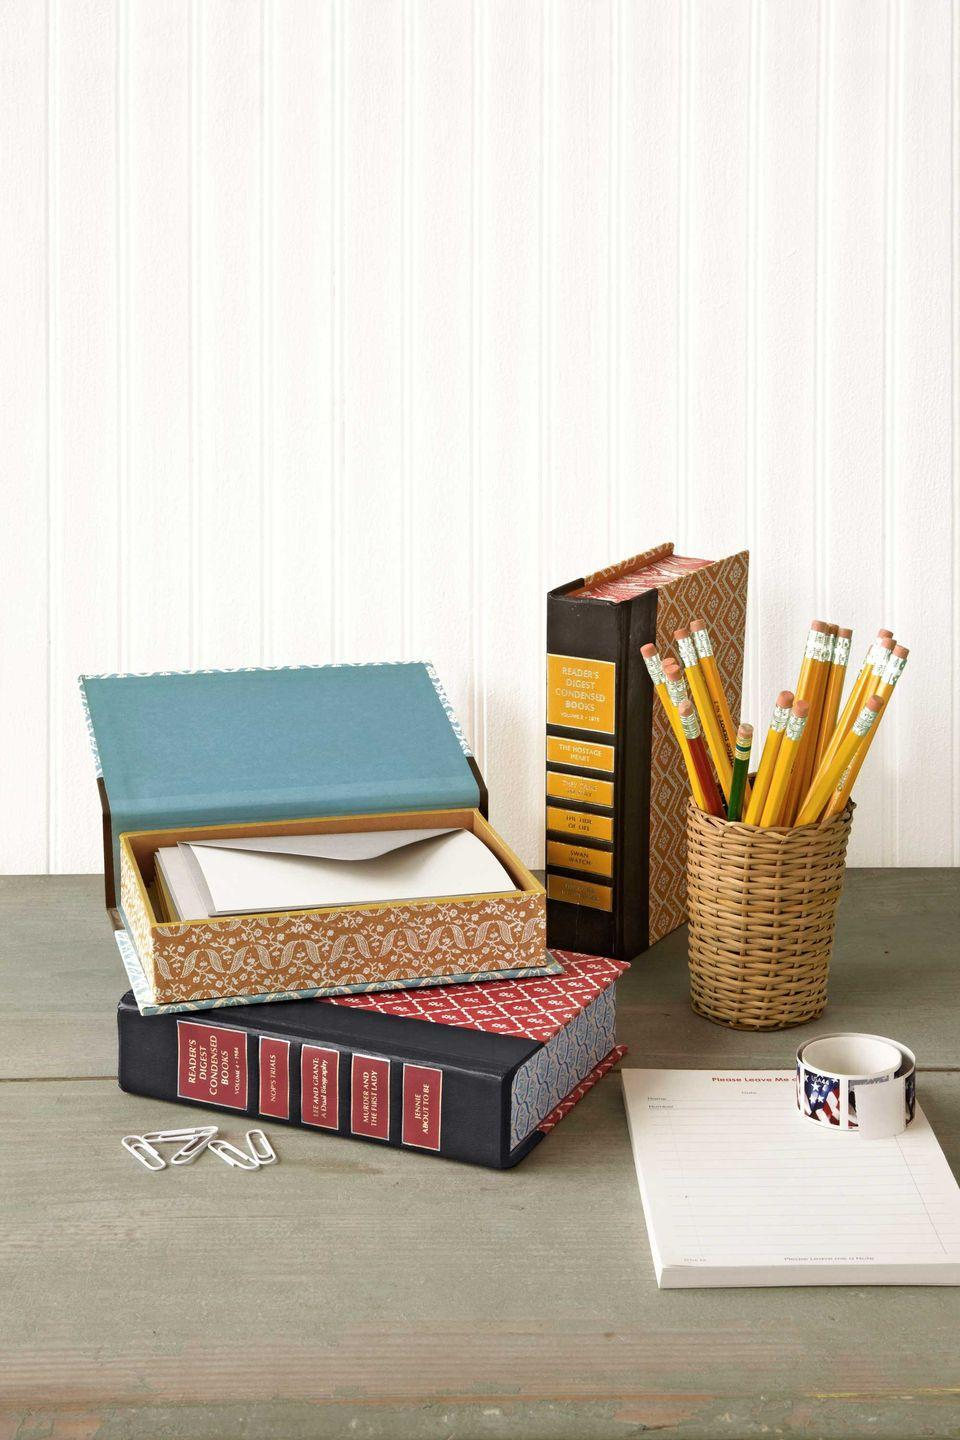 """<p>Extend the shelf life of outdated secondhand books, and give Dad a way to keep his desk organized.</p><p><strong><a href=""""https://www.countryliving.com/diy-crafts/how-to/g741/green-crafts-0309/?slide=35"""" rel=""""nofollow noopener"""" target=""""_blank"""" data-ylk=""""slk:Get the tutorial"""" class=""""link rapid-noclick-resp"""">Get the tutorial</a>.</strong></p>"""